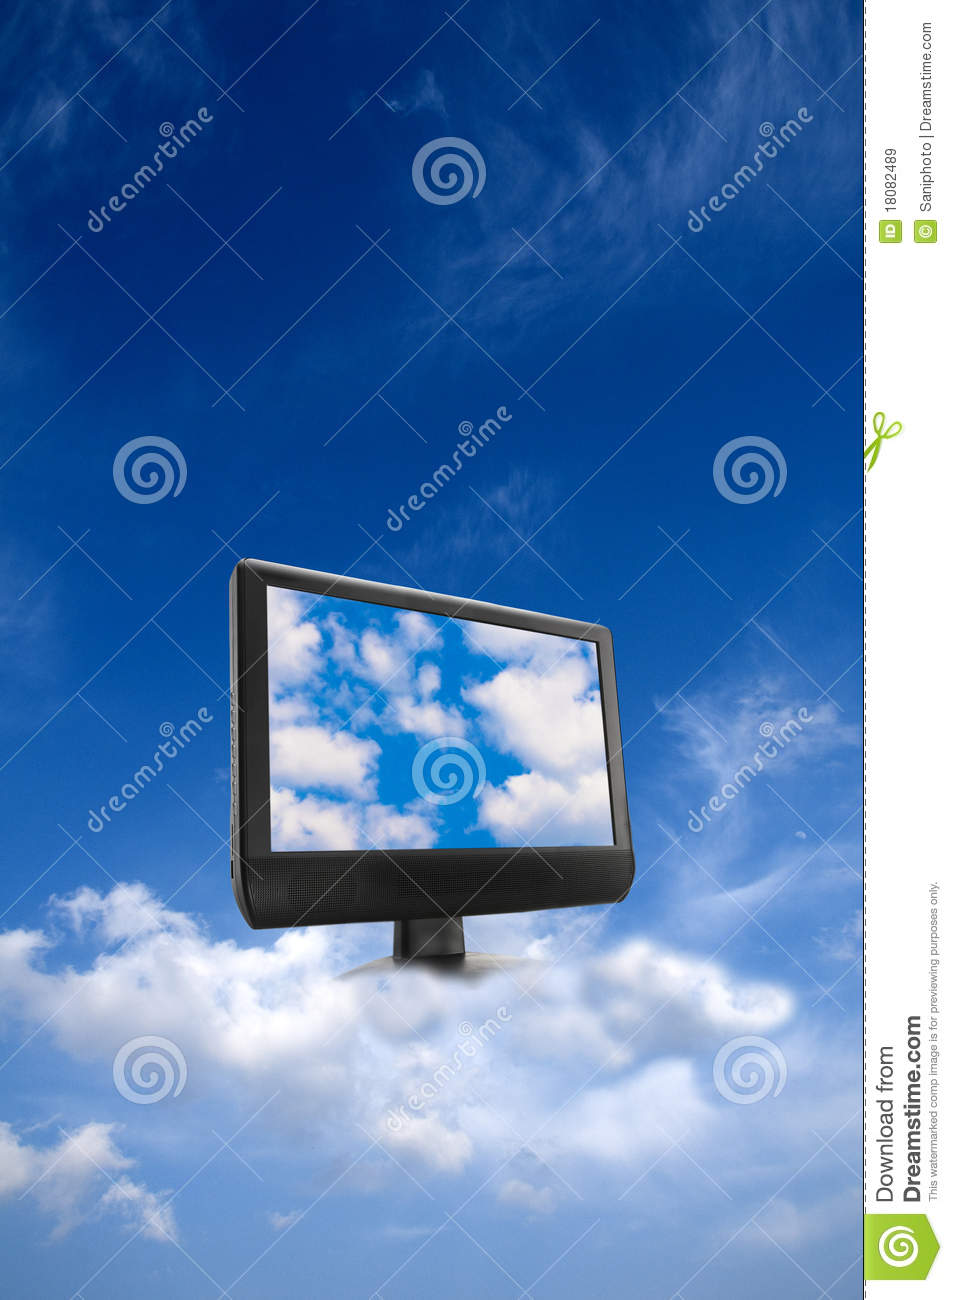 Cloud Computing Video Effects & Stock Videos from VideoHive